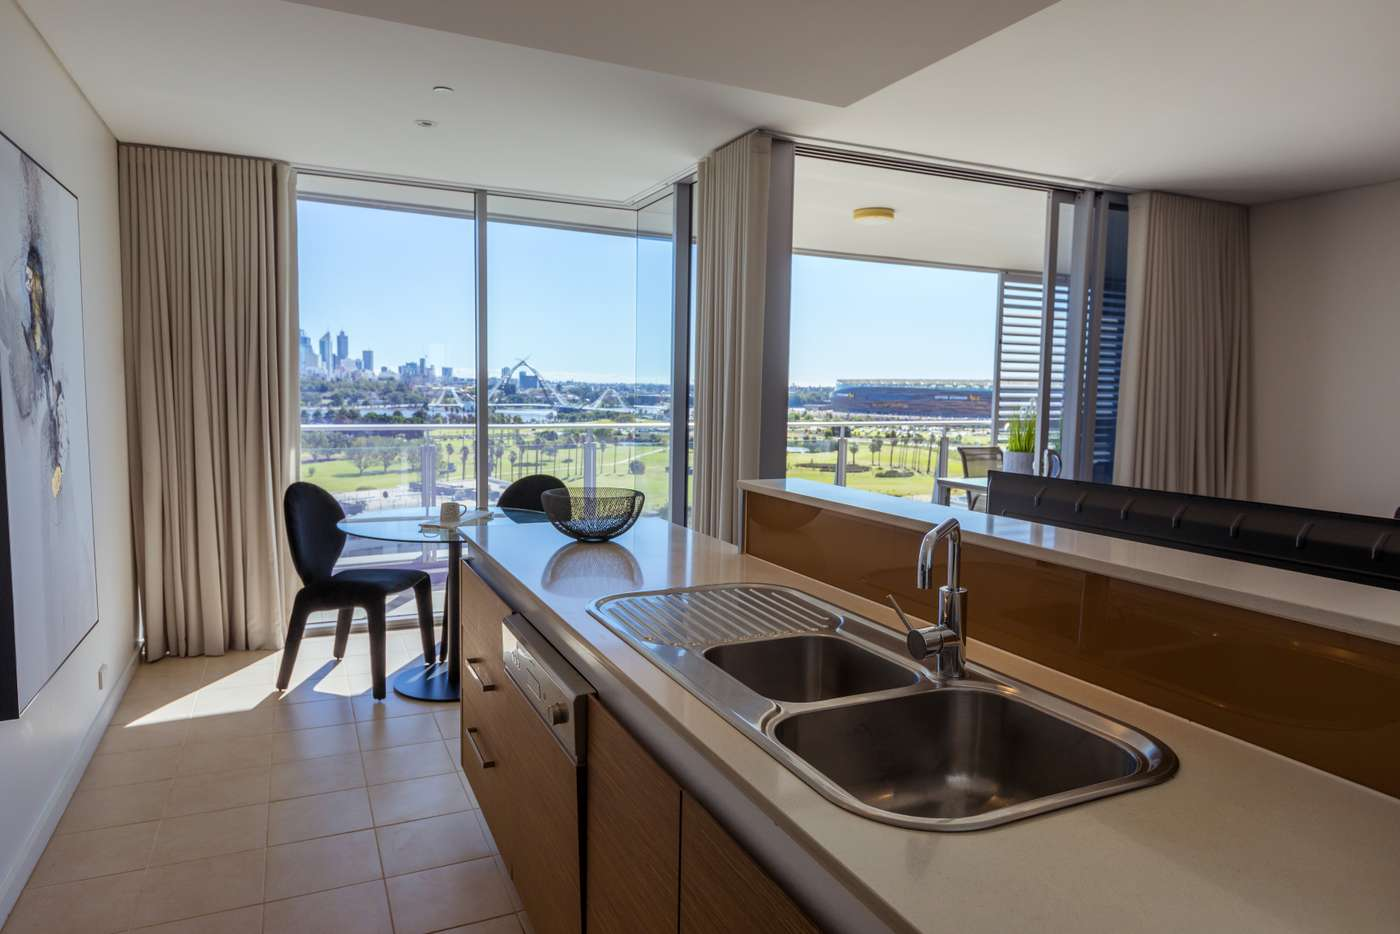 Fifth view of Homely apartment listing, 901/19 The Circus, Burswood WA 6100